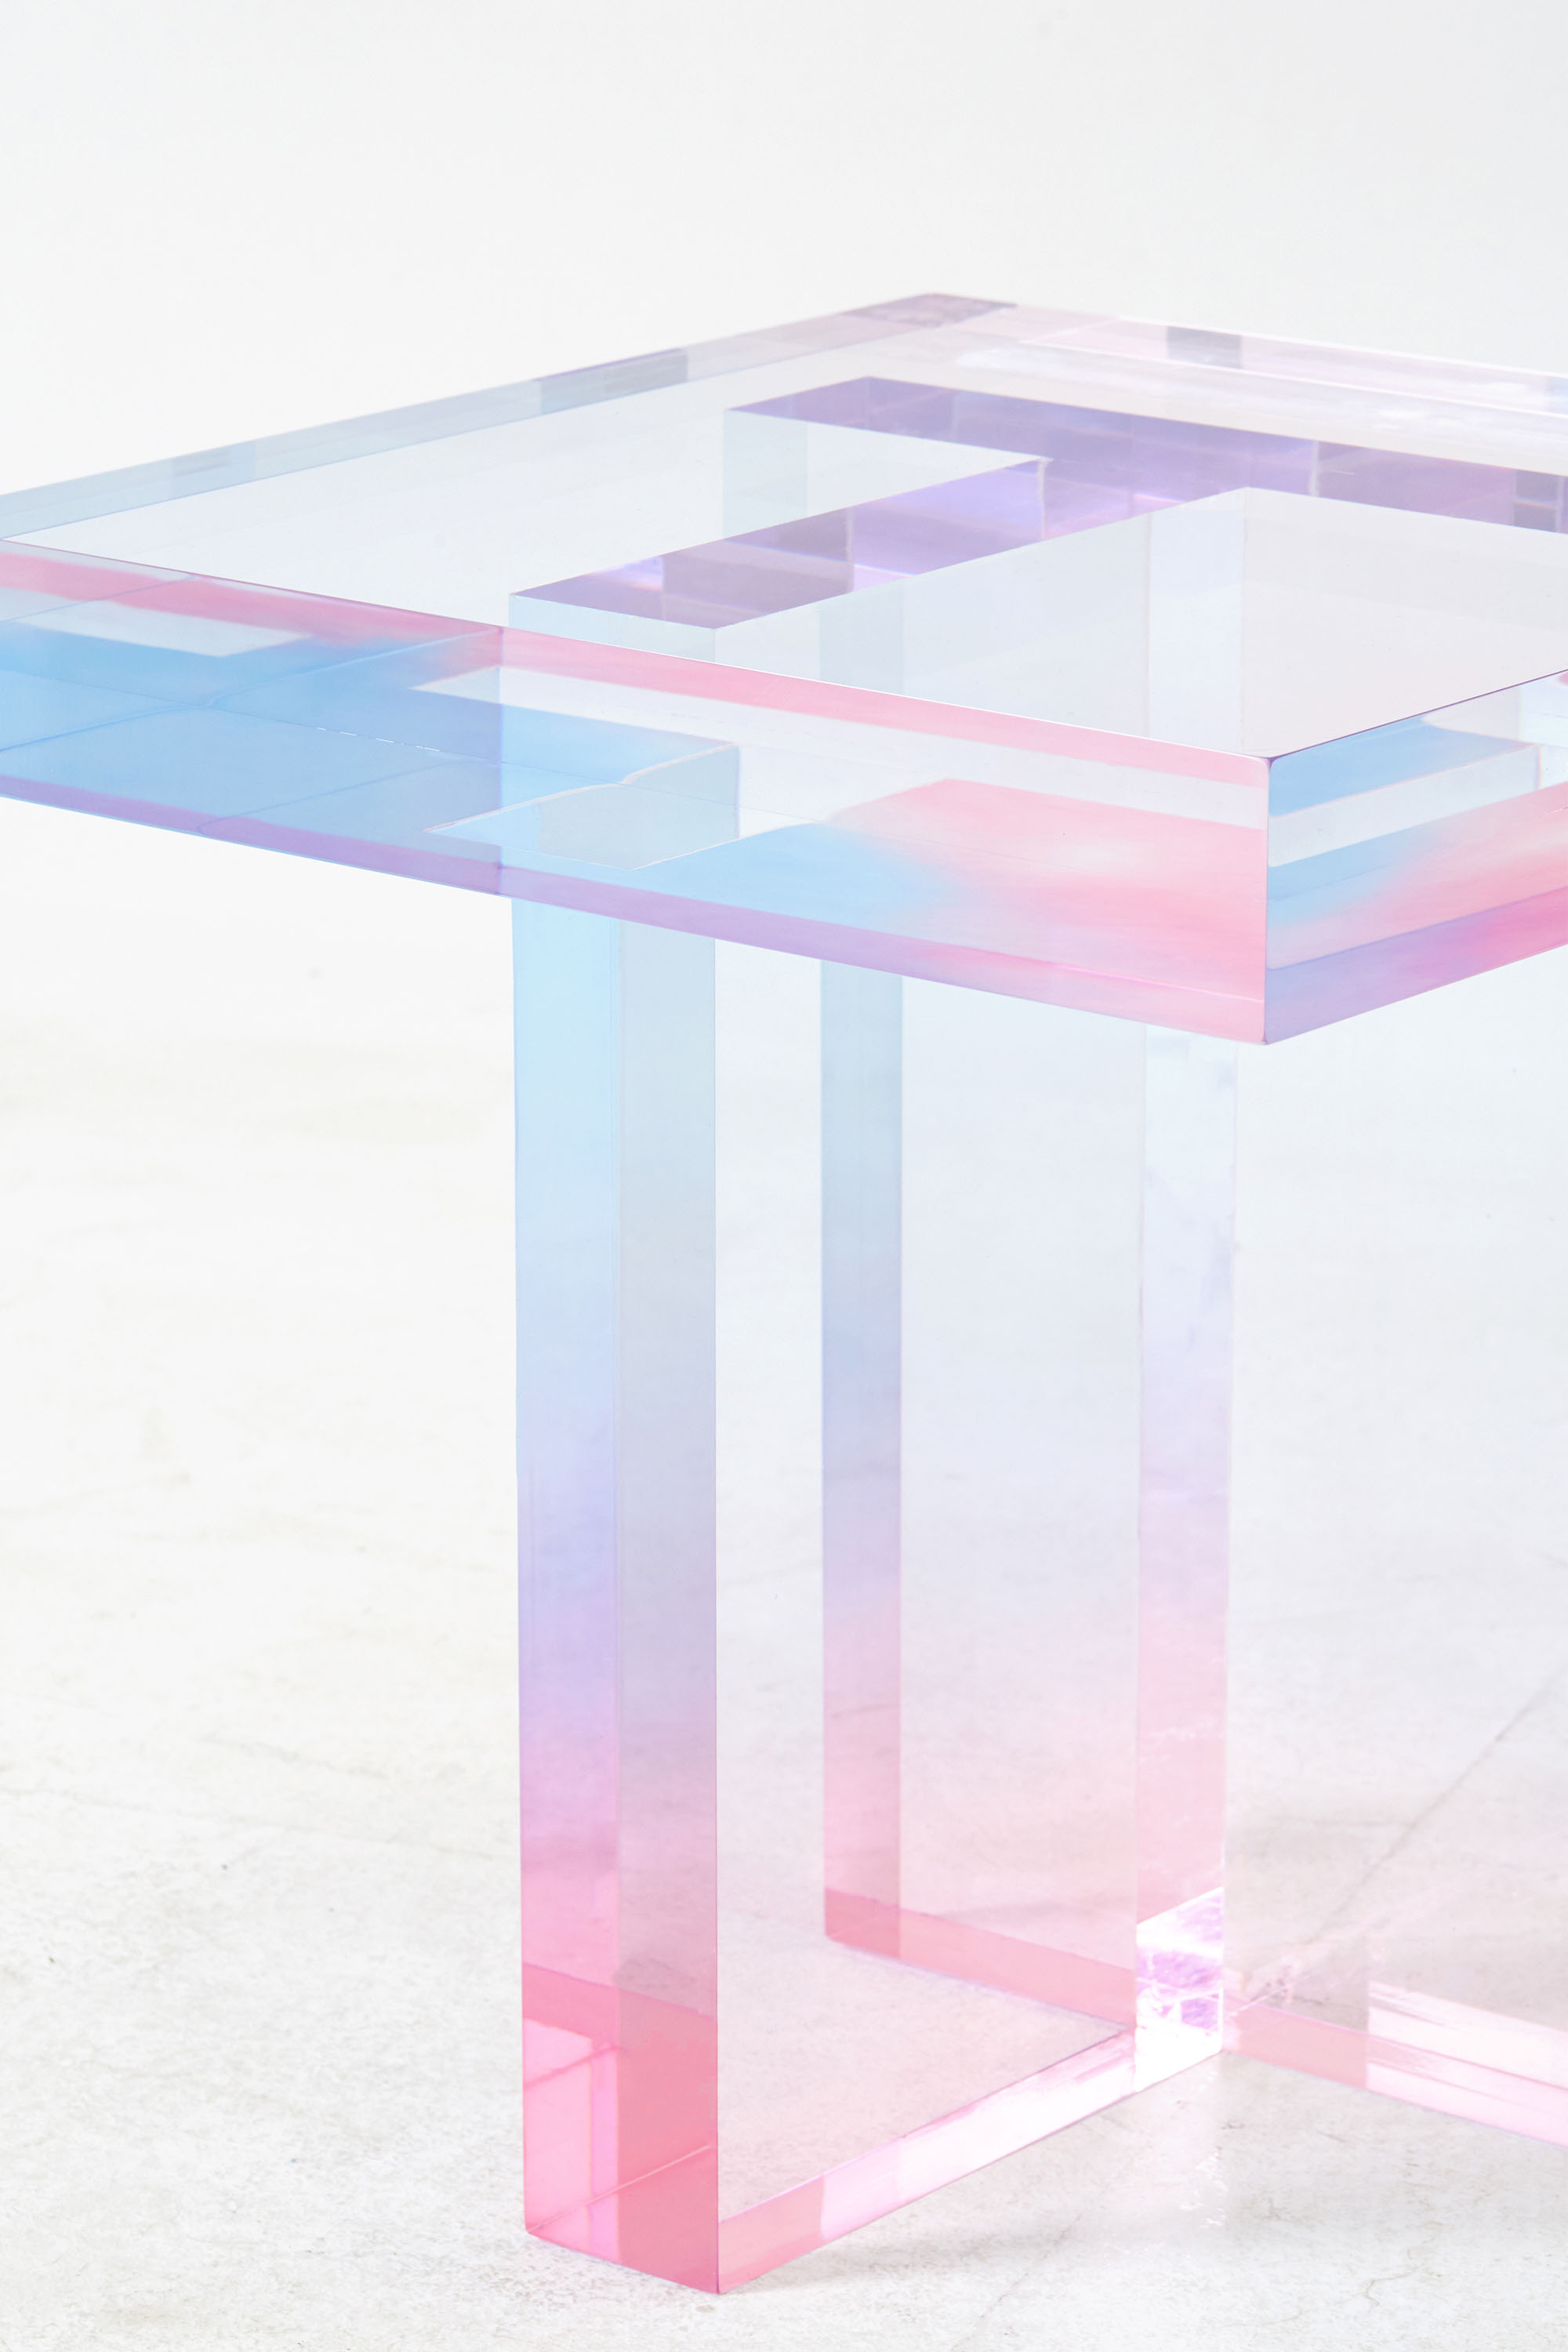 Intersections, junctions and optical interactions between colors and layers of the acrylic resin, created by Saerom in the  Crystal Series  of tables.